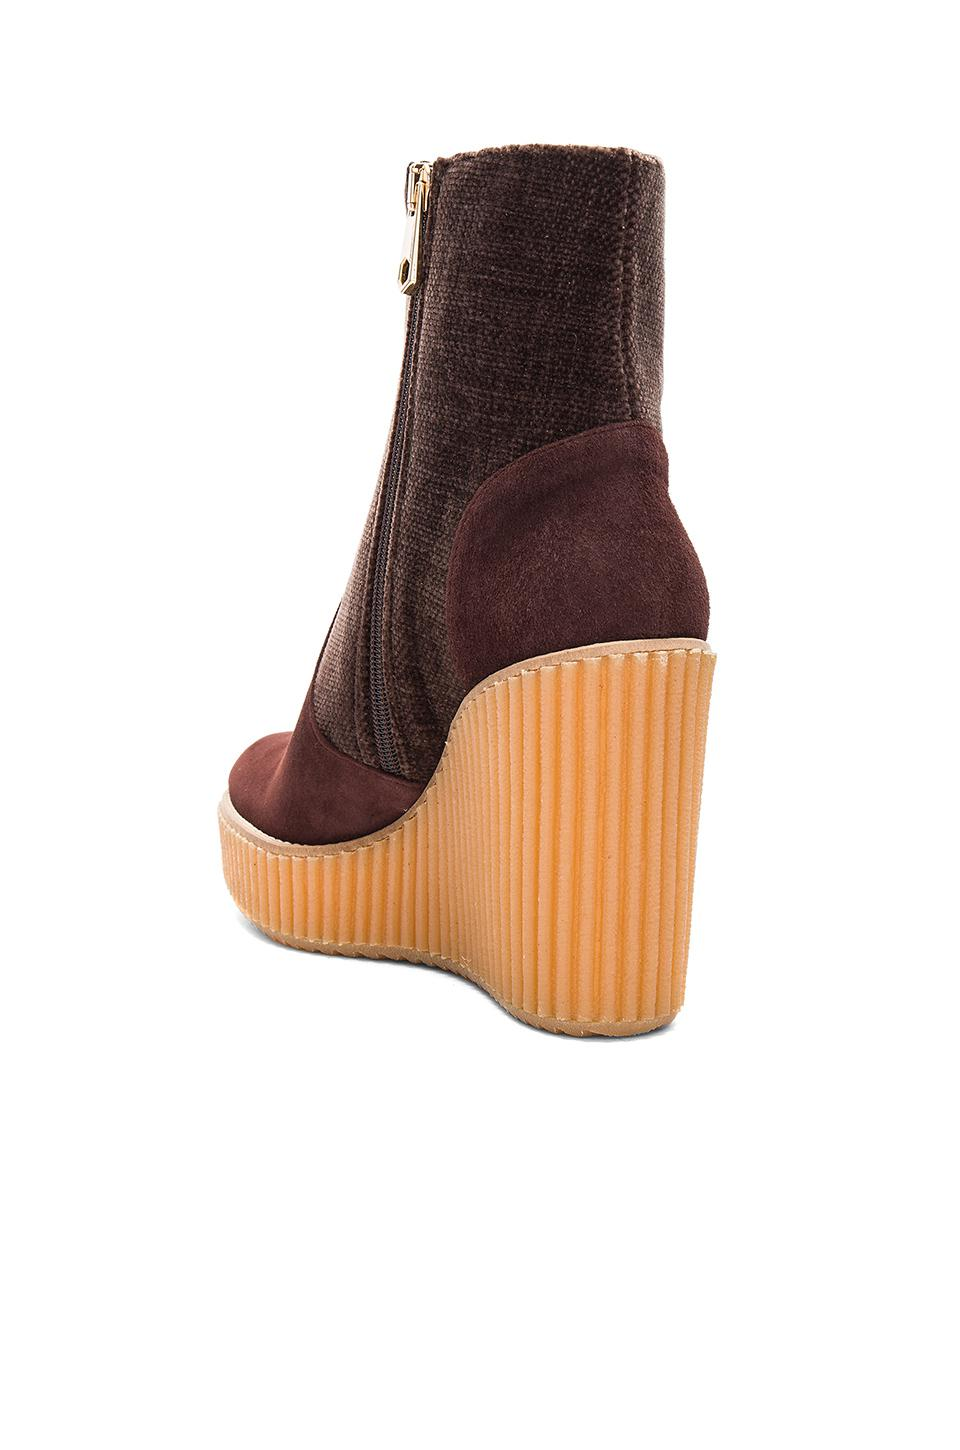 7ded420d6f07 Lyst - Castaner Quilmes Wedge in Brown